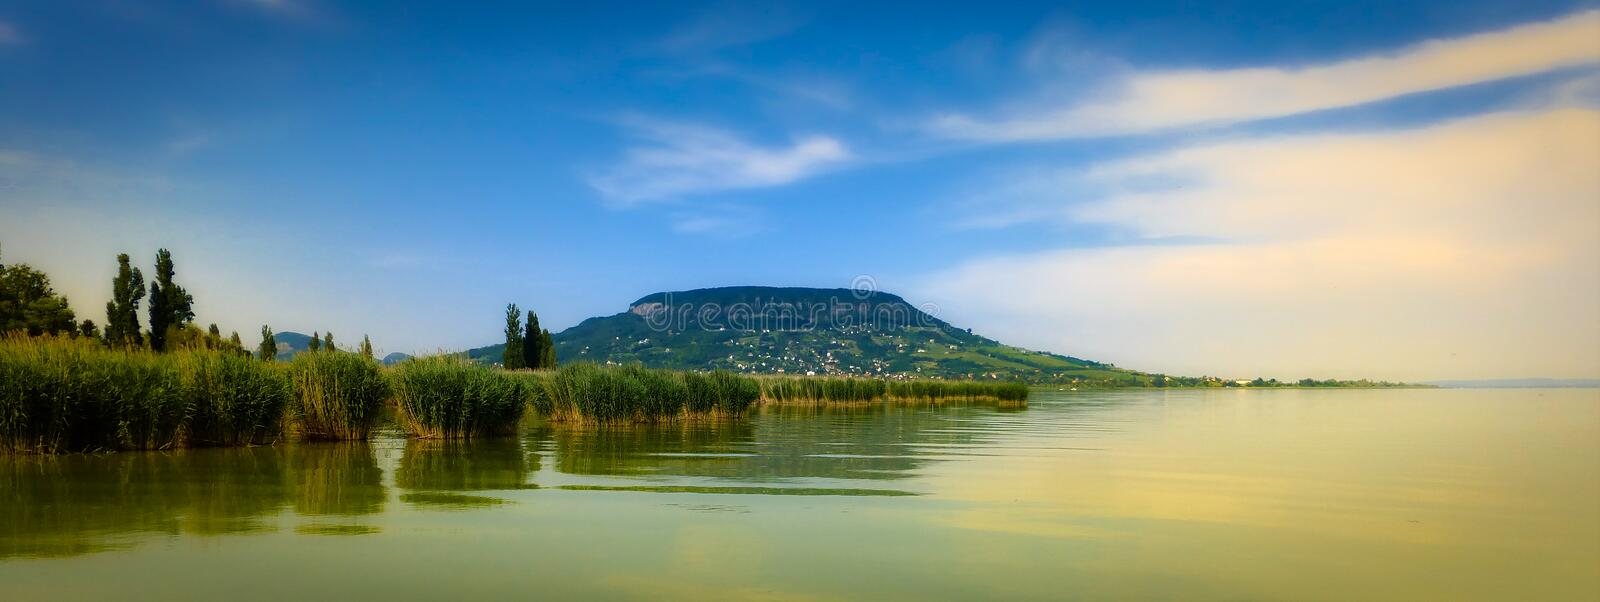 Balaton lake and a hill in the background. The Balaton lake in Hungary and a hill in the background, calm water, blue sky with smooth high-level clouds stock photo